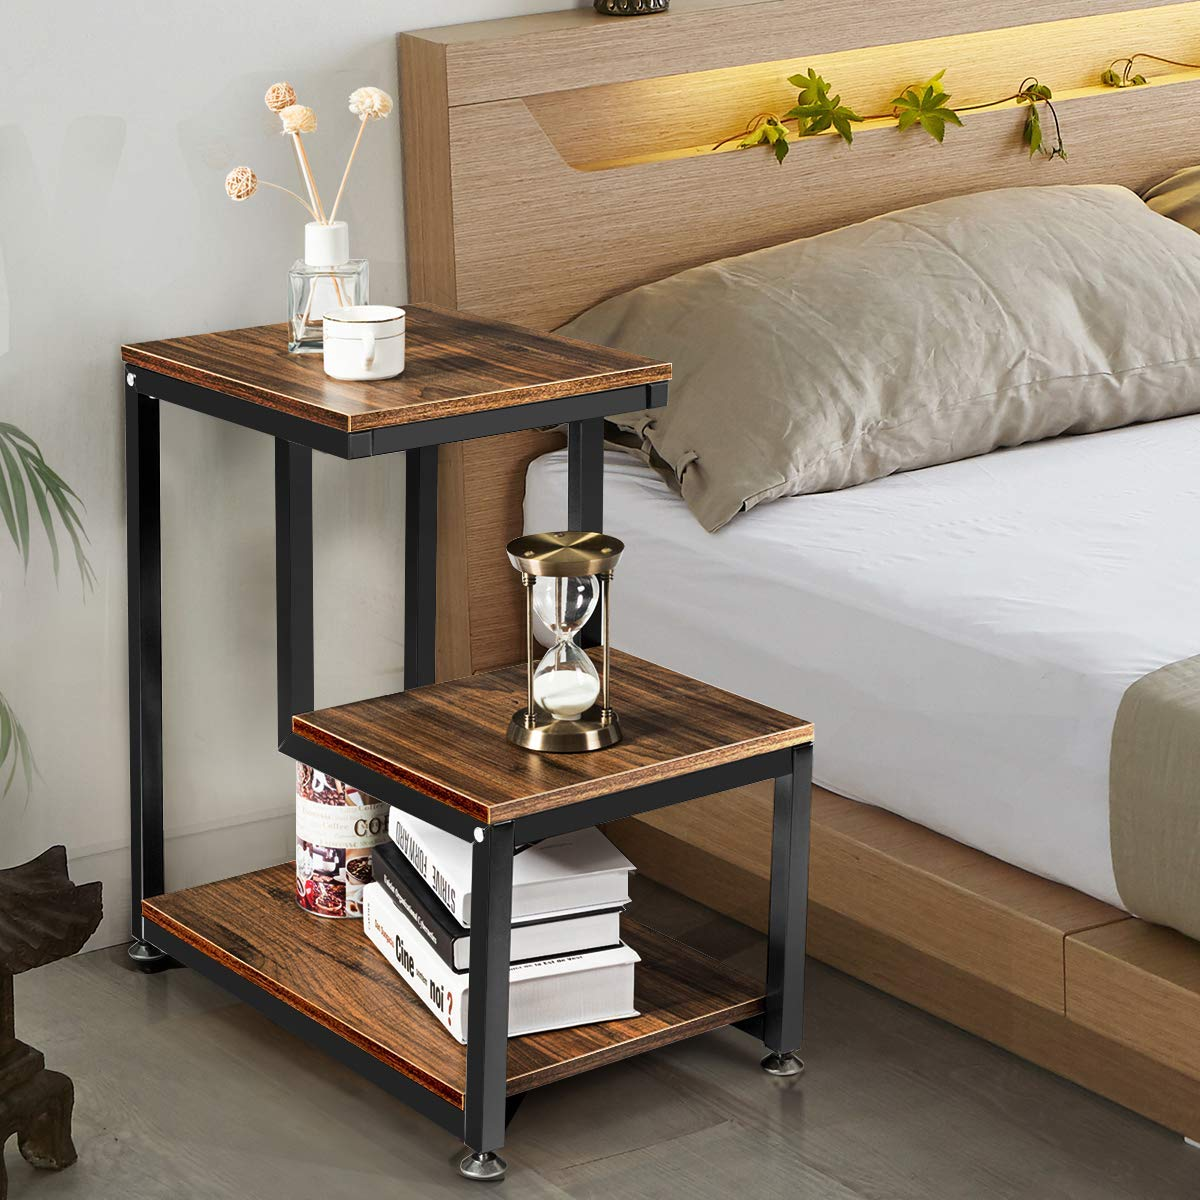 3 Tier Rustic Metal Frame Nightstand With Storage Shelf